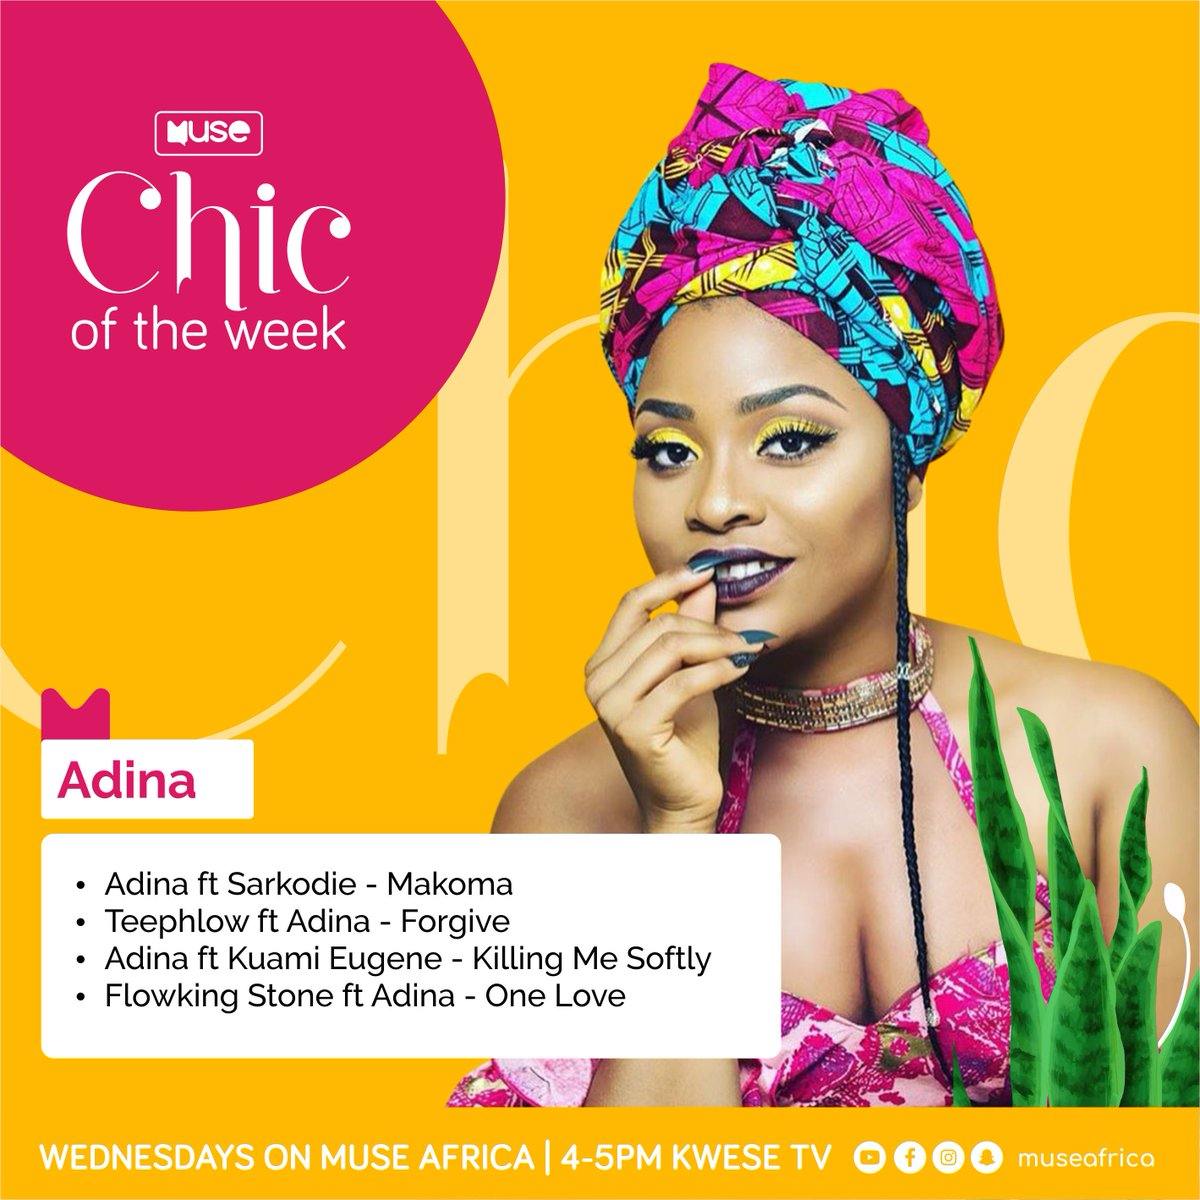 #MuseBOQ19 Enjoy our special Muse Chic of the Week Playlist for @Adina_Thembi on @Kwese_GH at 4pm  @Adina_Thembi ft @sarkodie - Makoma @TeePhlowGH ft @Adina_Thembi - Forgive @Adina_Thembi ft @KuamiEugene - Killing Me Softly @FlowkingStone ft @Adina_Thembi - One Love